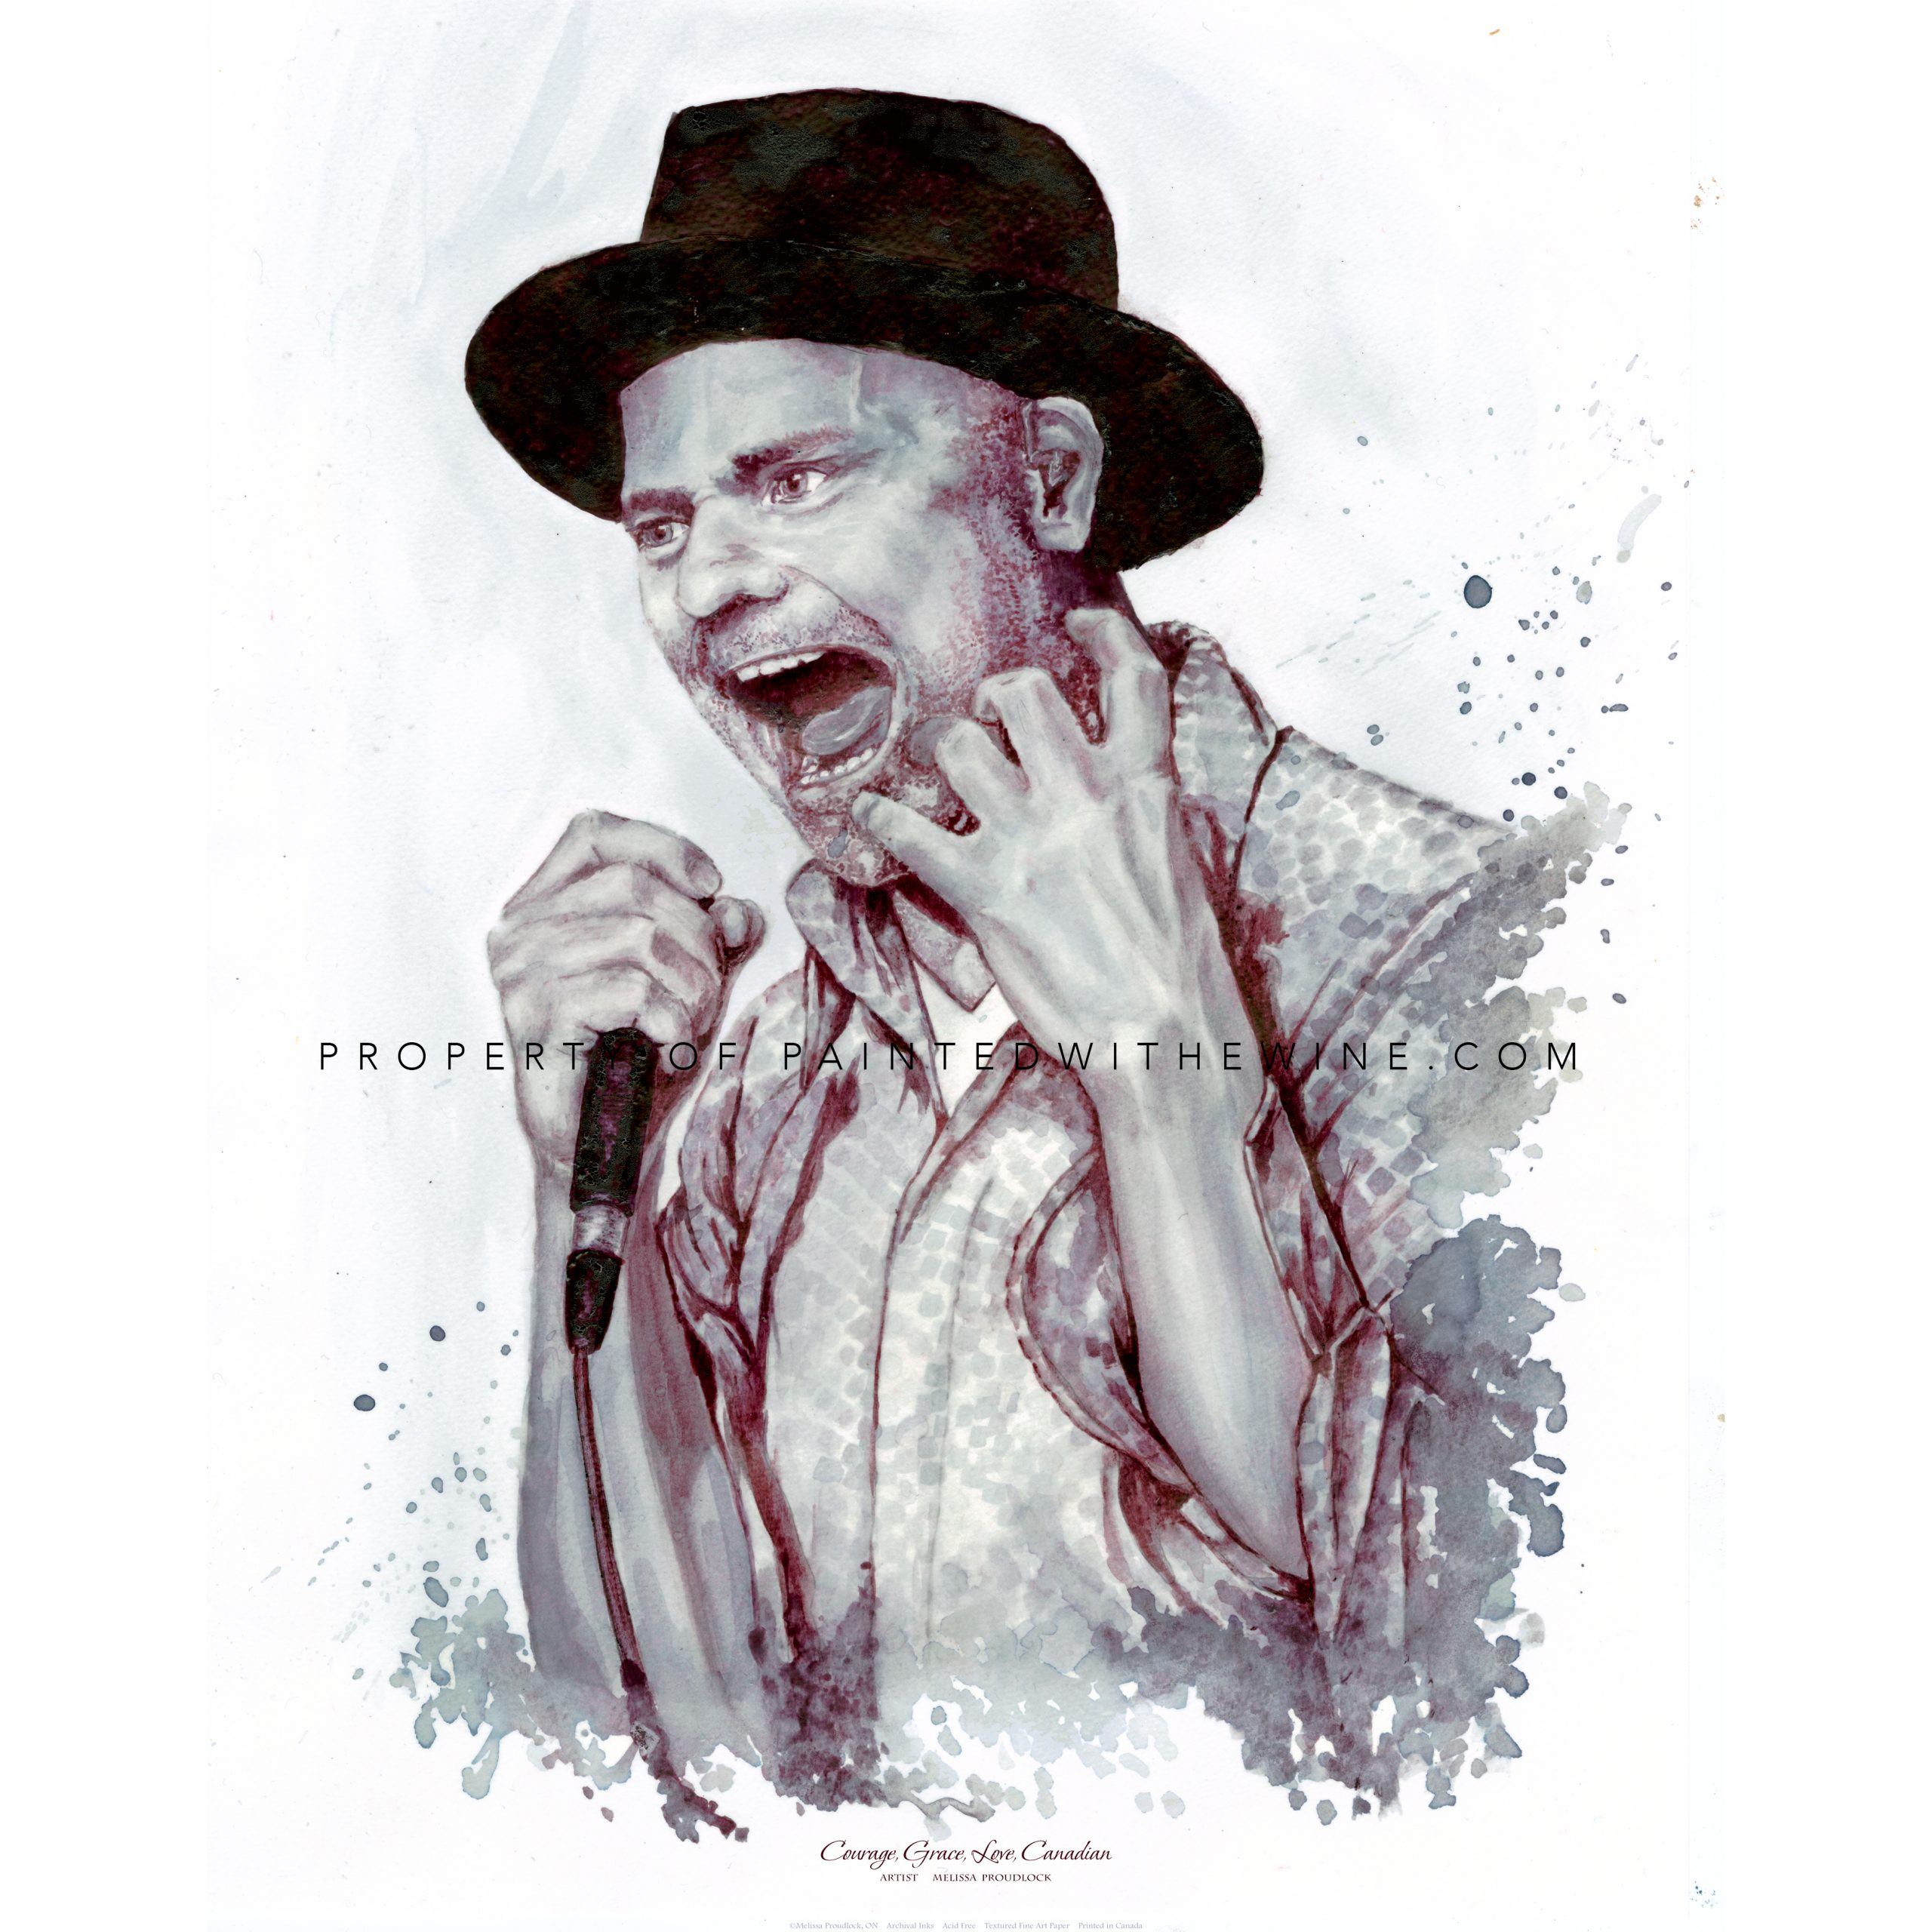 Gord Downie – The Tragically Hip